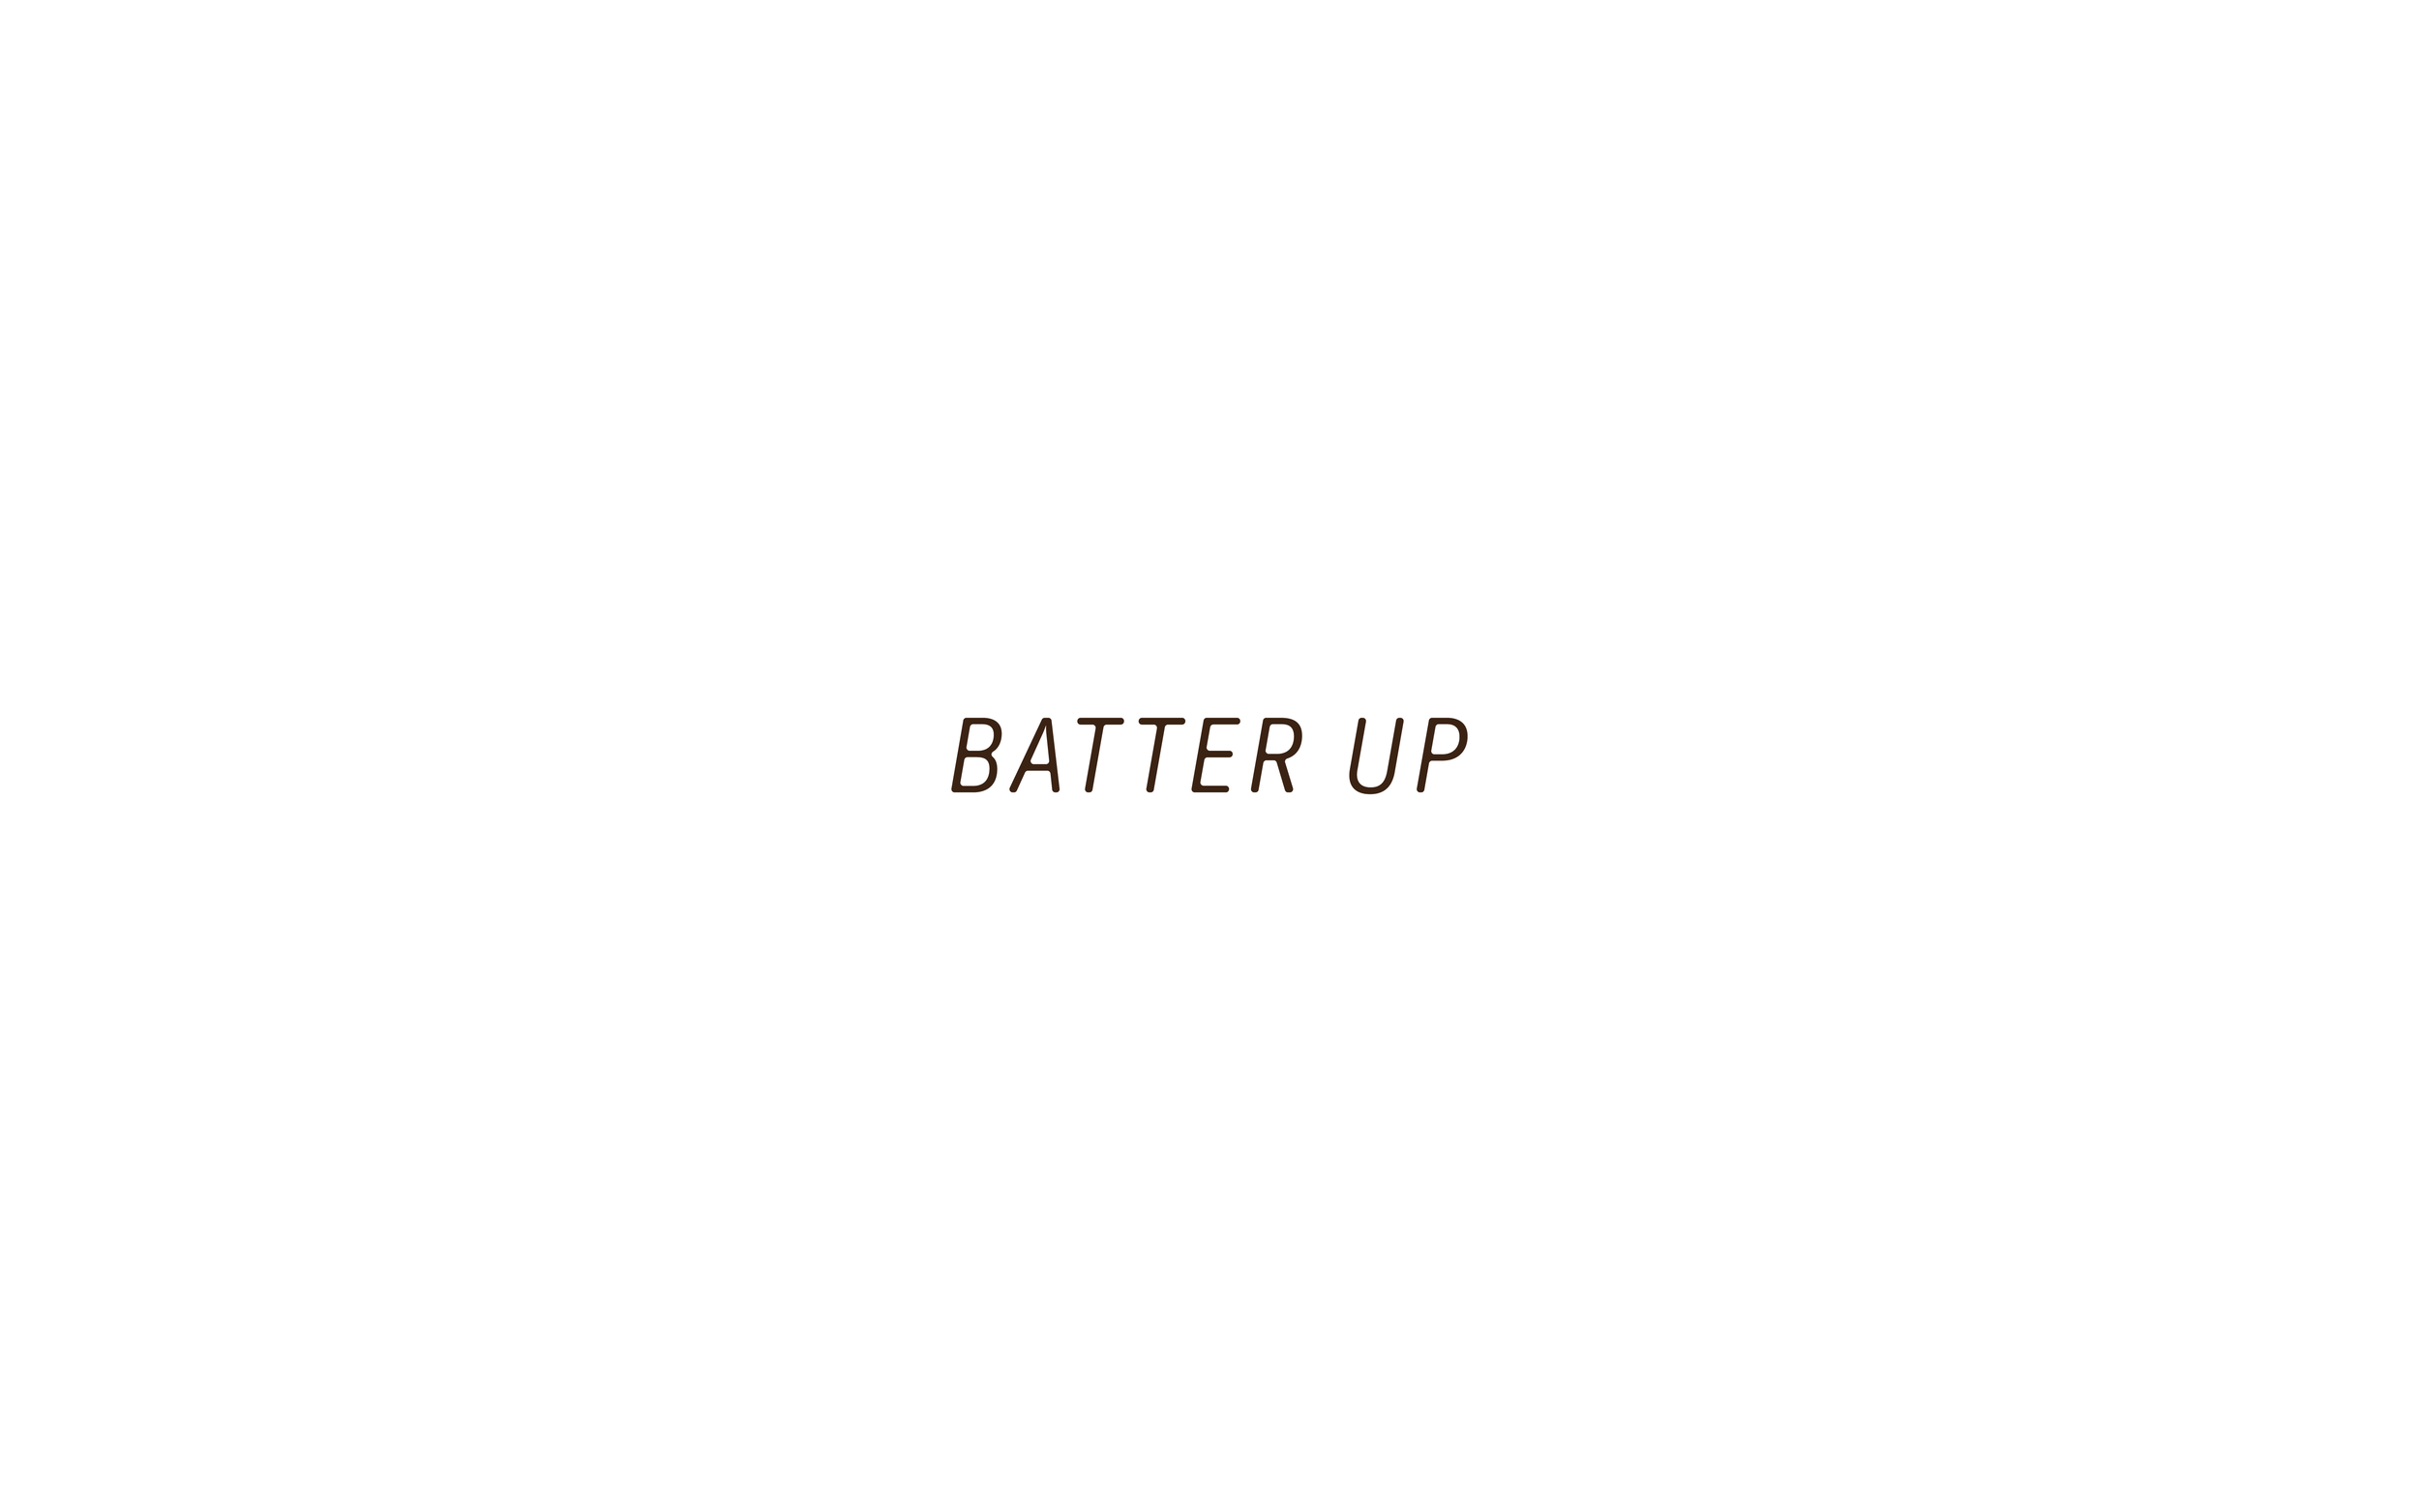 Batter_up_logo